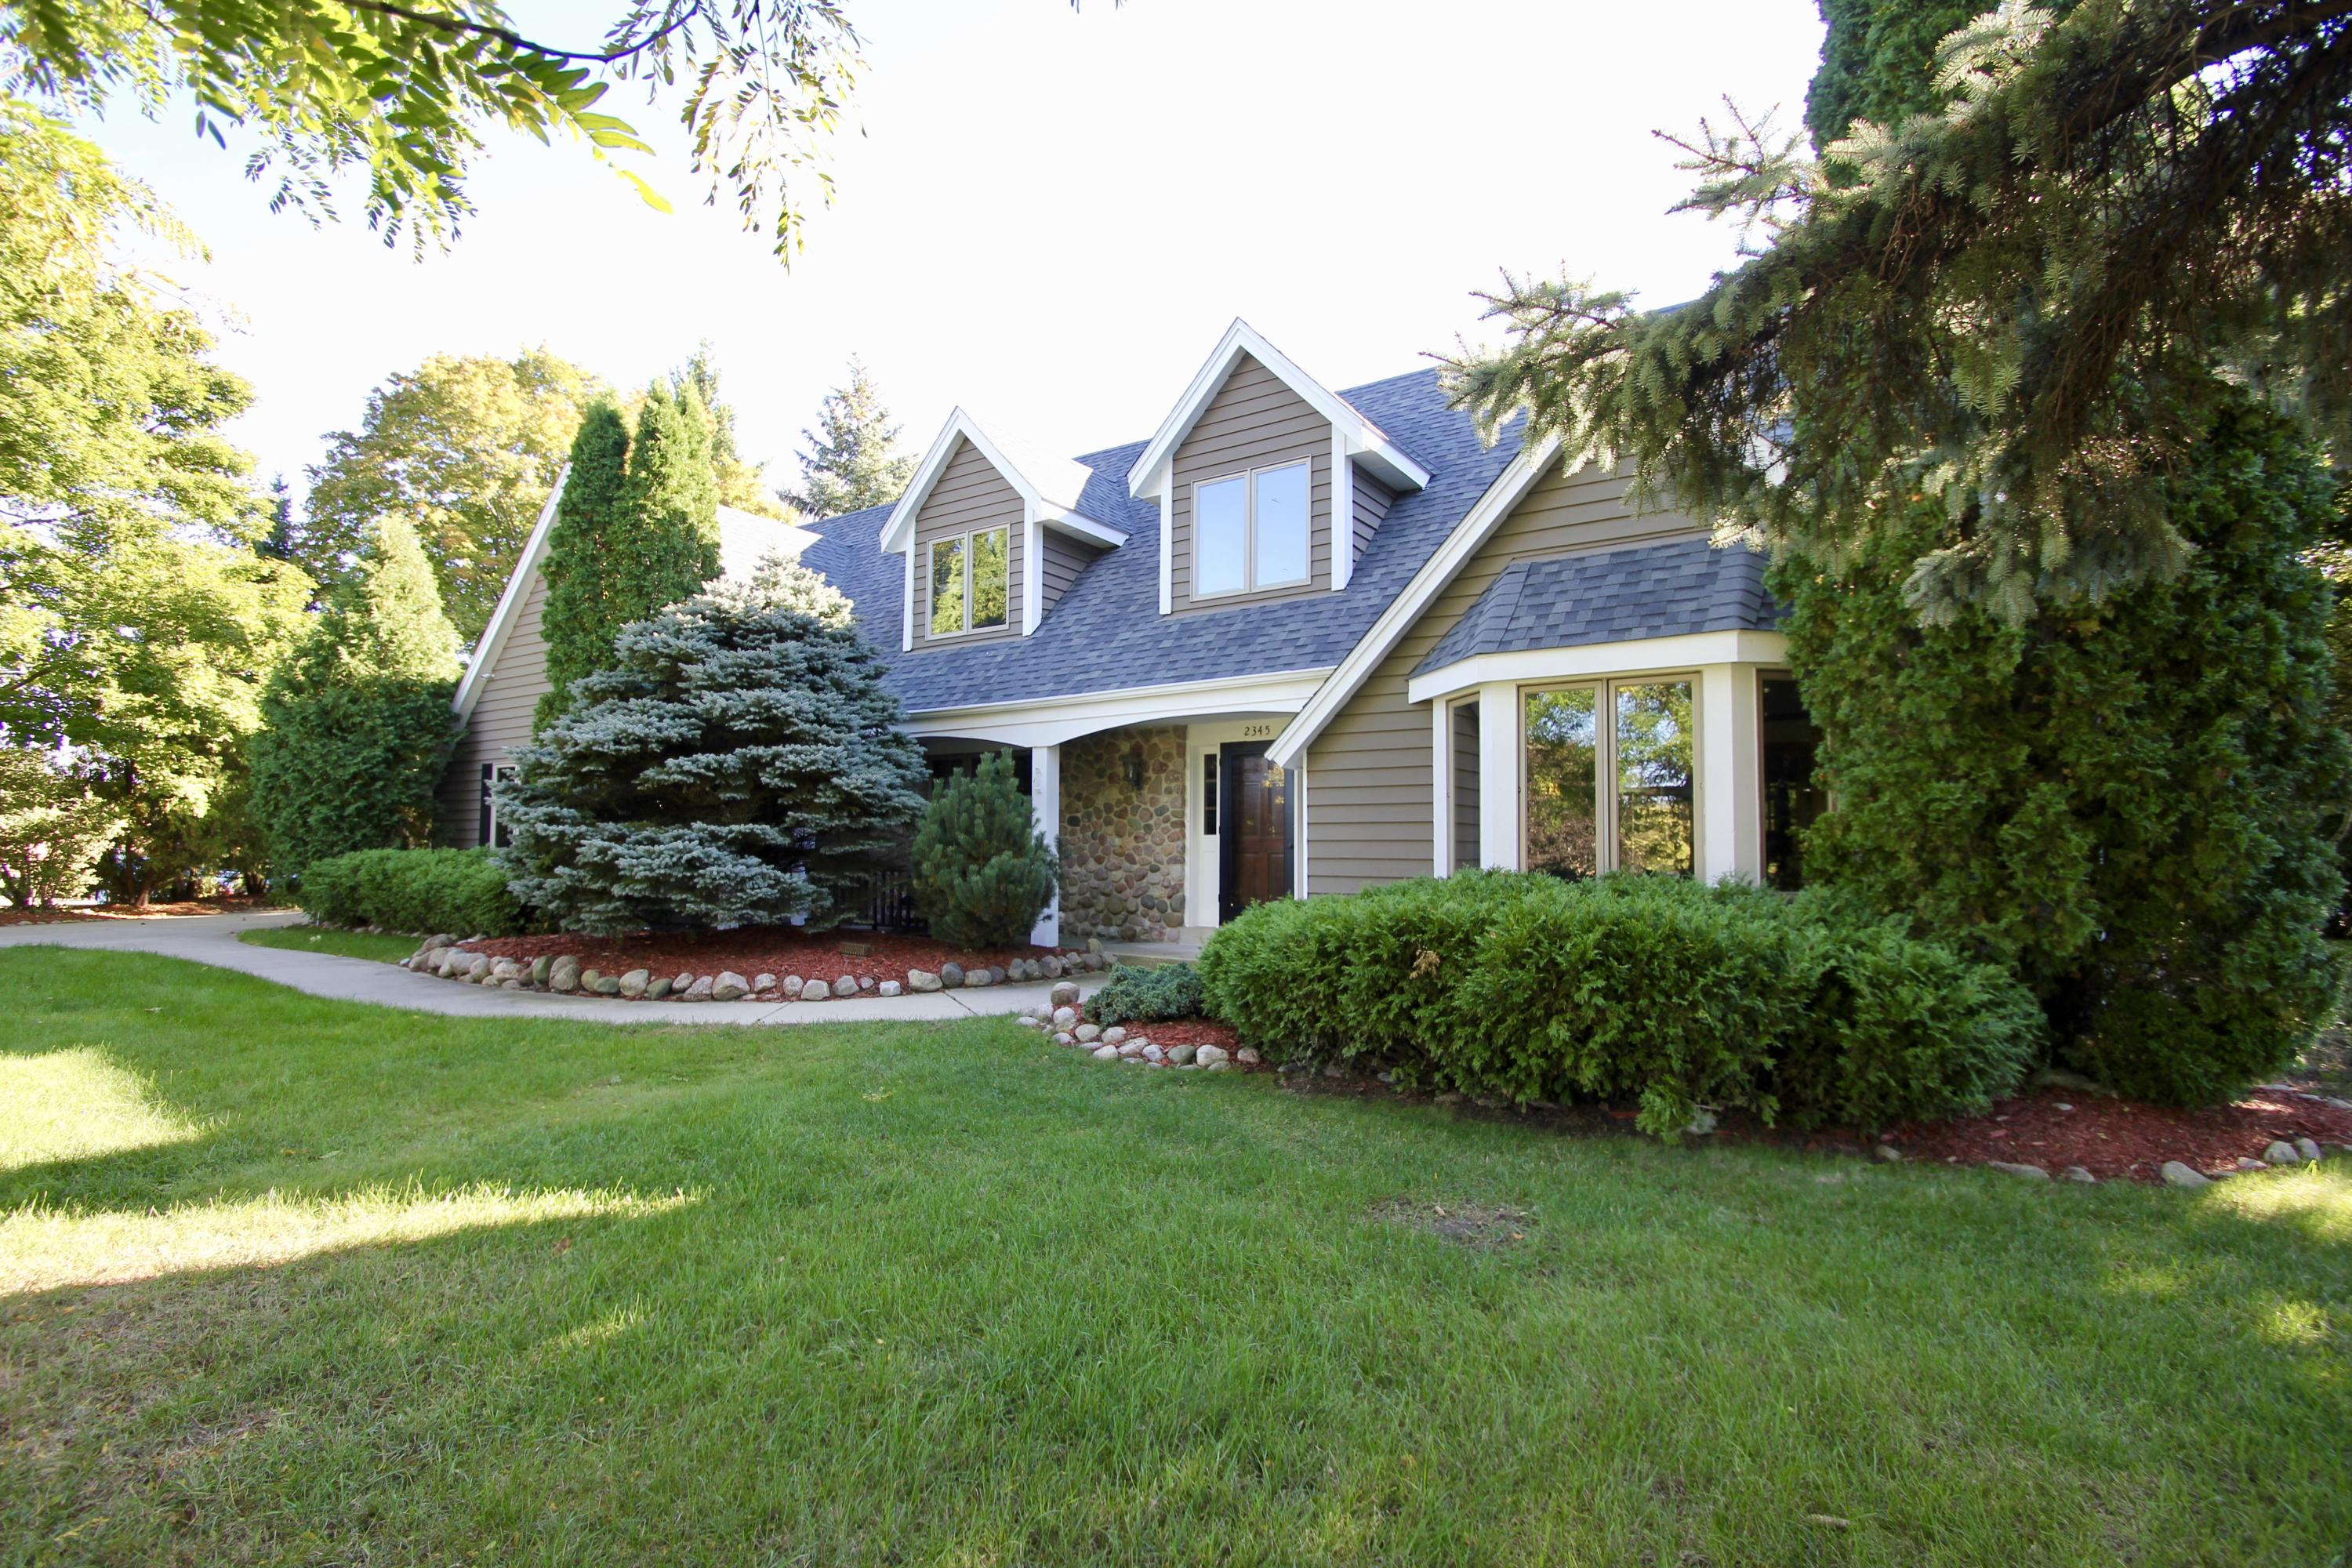 2345 Sheraton Rd, Brookfield, Wisconsin 53005, 4 Bedrooms Bedrooms, 9 Rooms Rooms,3 BathroomsBathrooms,Single-Family,For Sale,Sheraton Rd,1609310